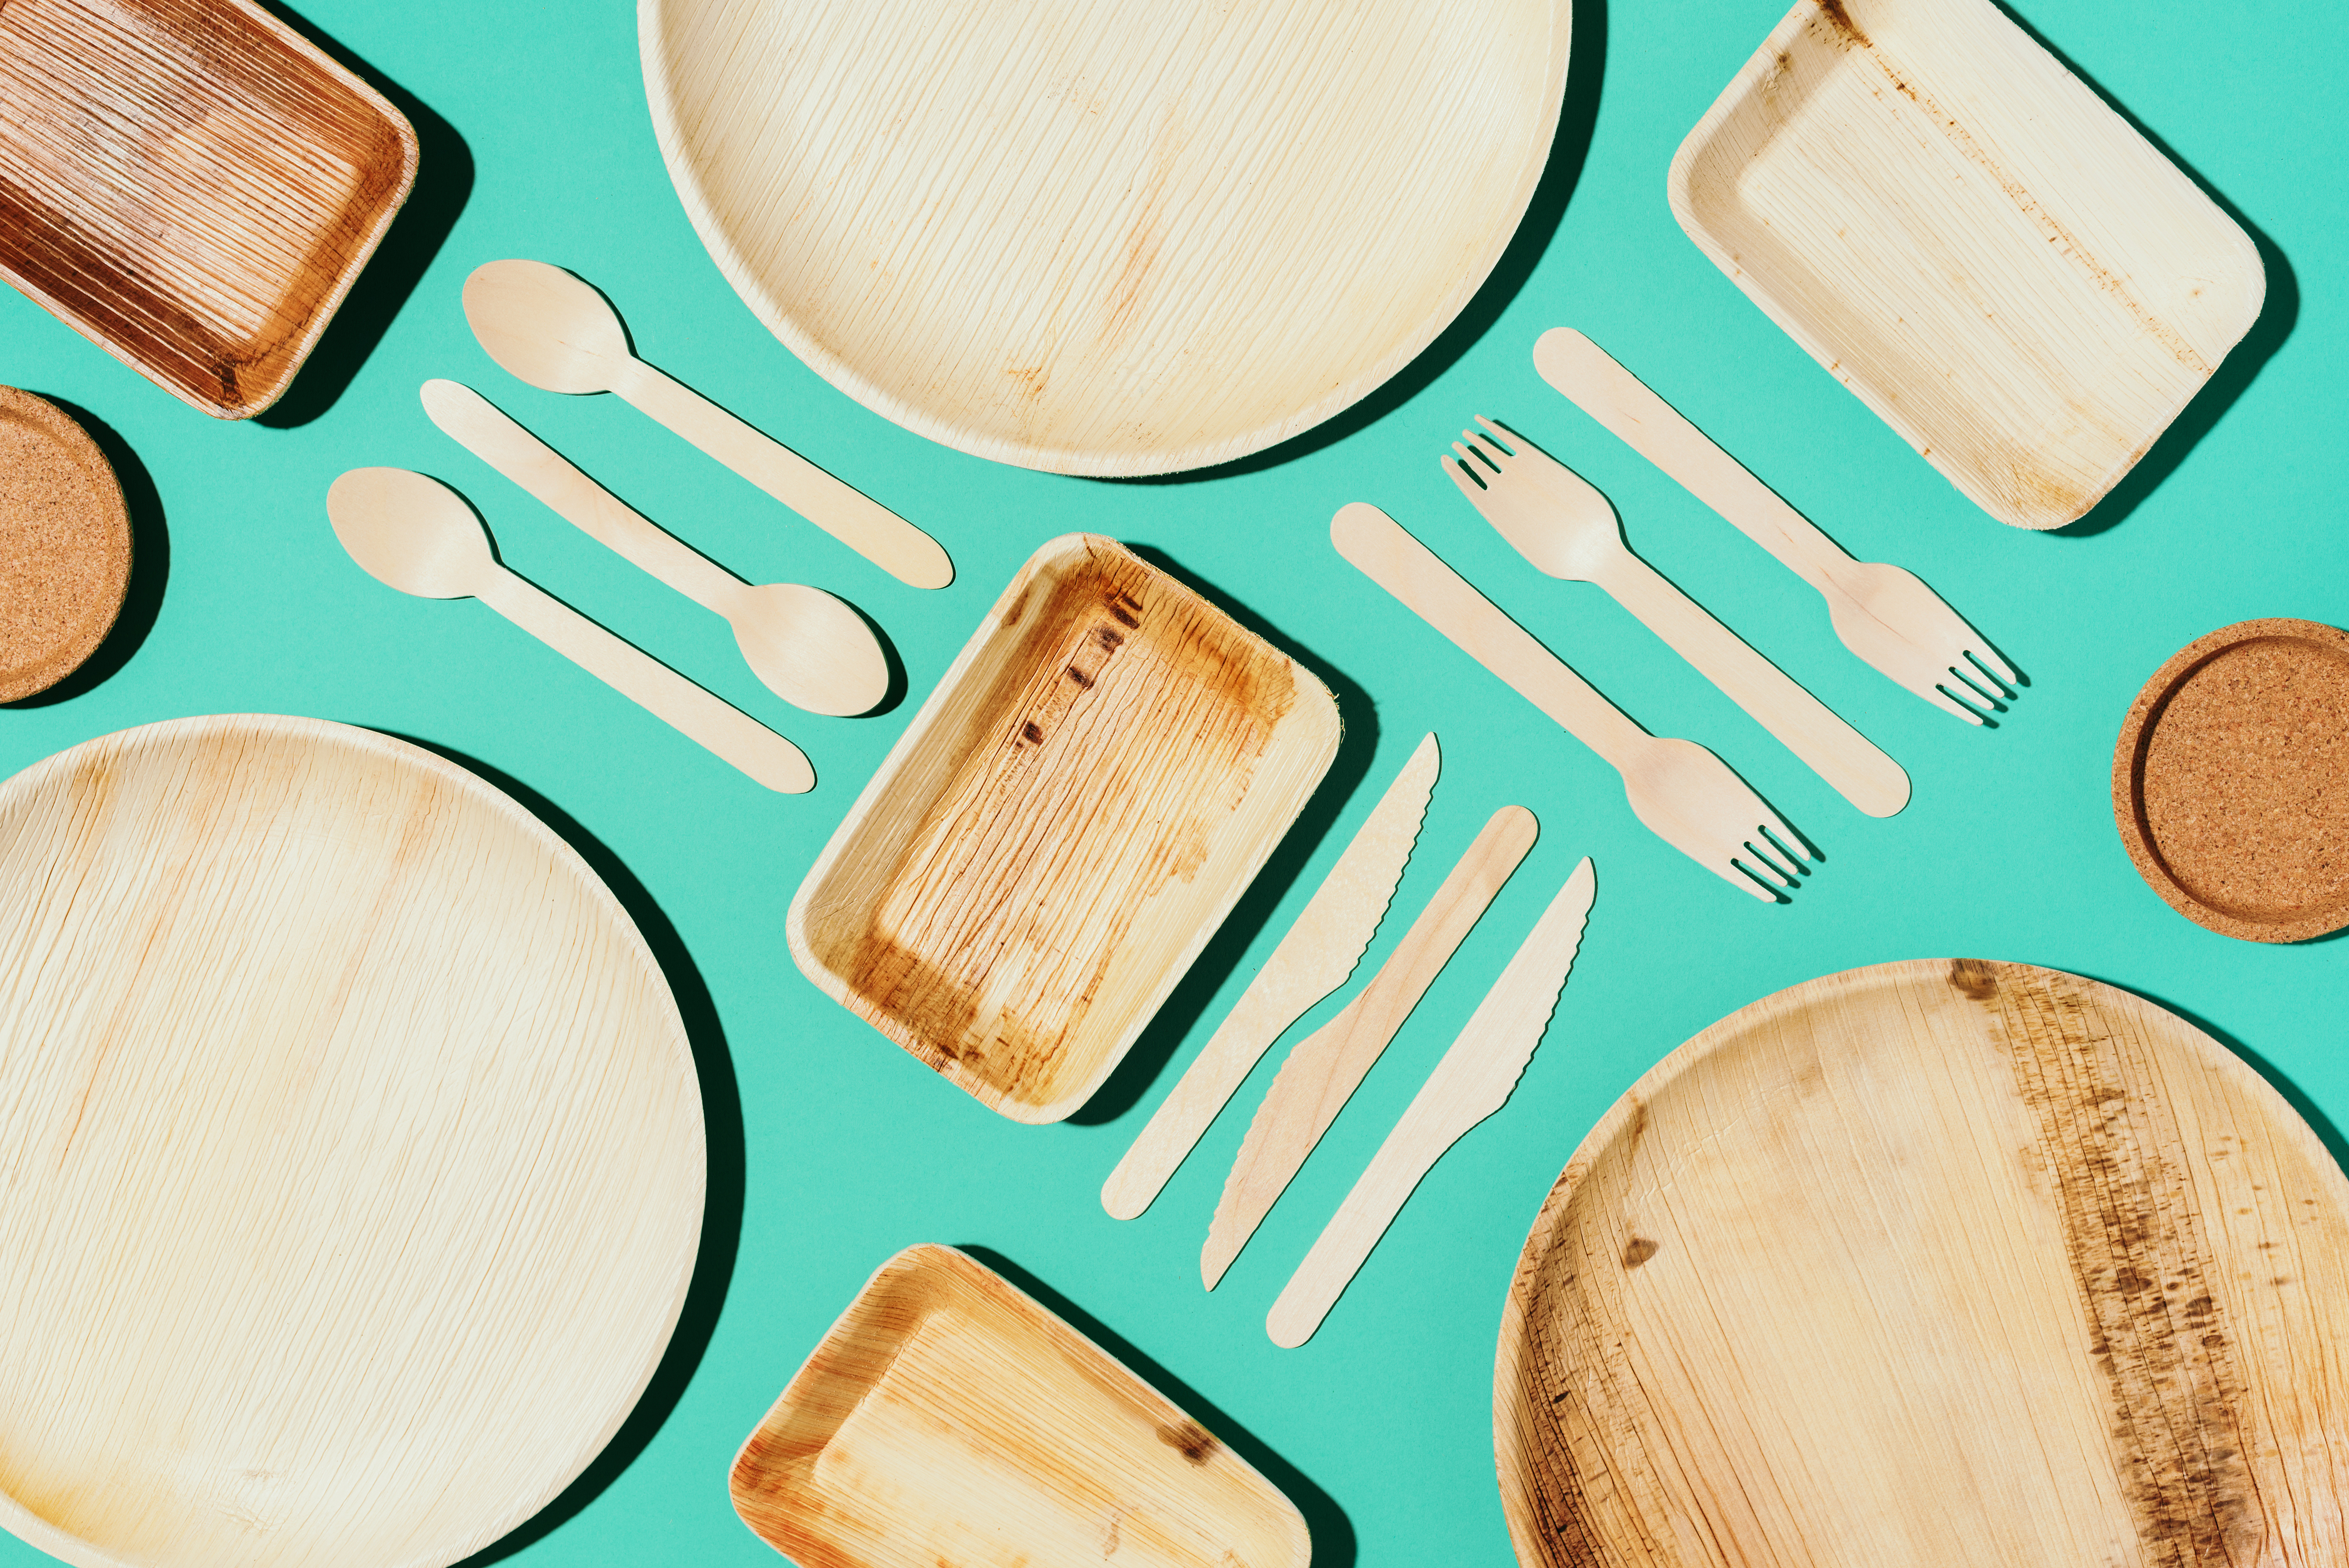 Bamboo plates, wooden spoon, fork, knife, craft paper cups on blue background. Disposable tableware from natural materials. Sustainable lifestyle concept. Eco-friendly disposable utensils.